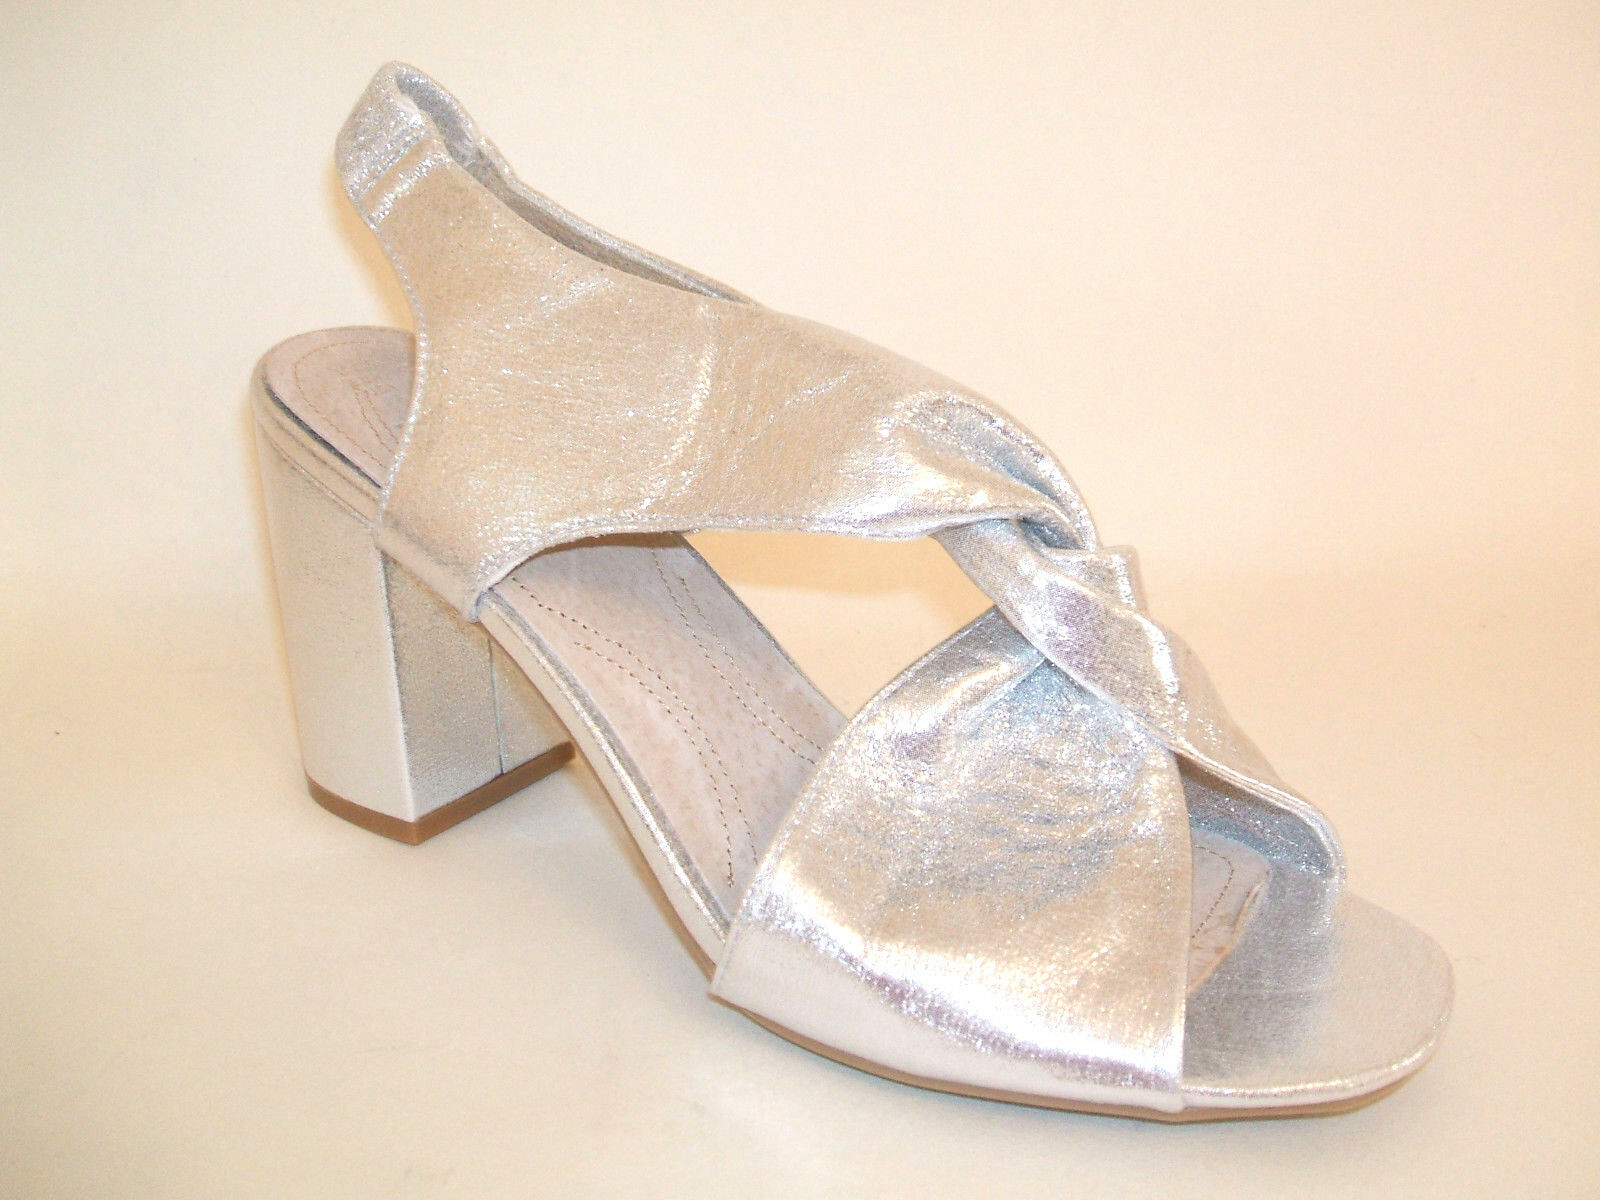 WOMENS NEW PLUS SIZE 9 43 WIDE FIT SILVER MID HIGH HEEL TRANSVESTITE CD SHOES